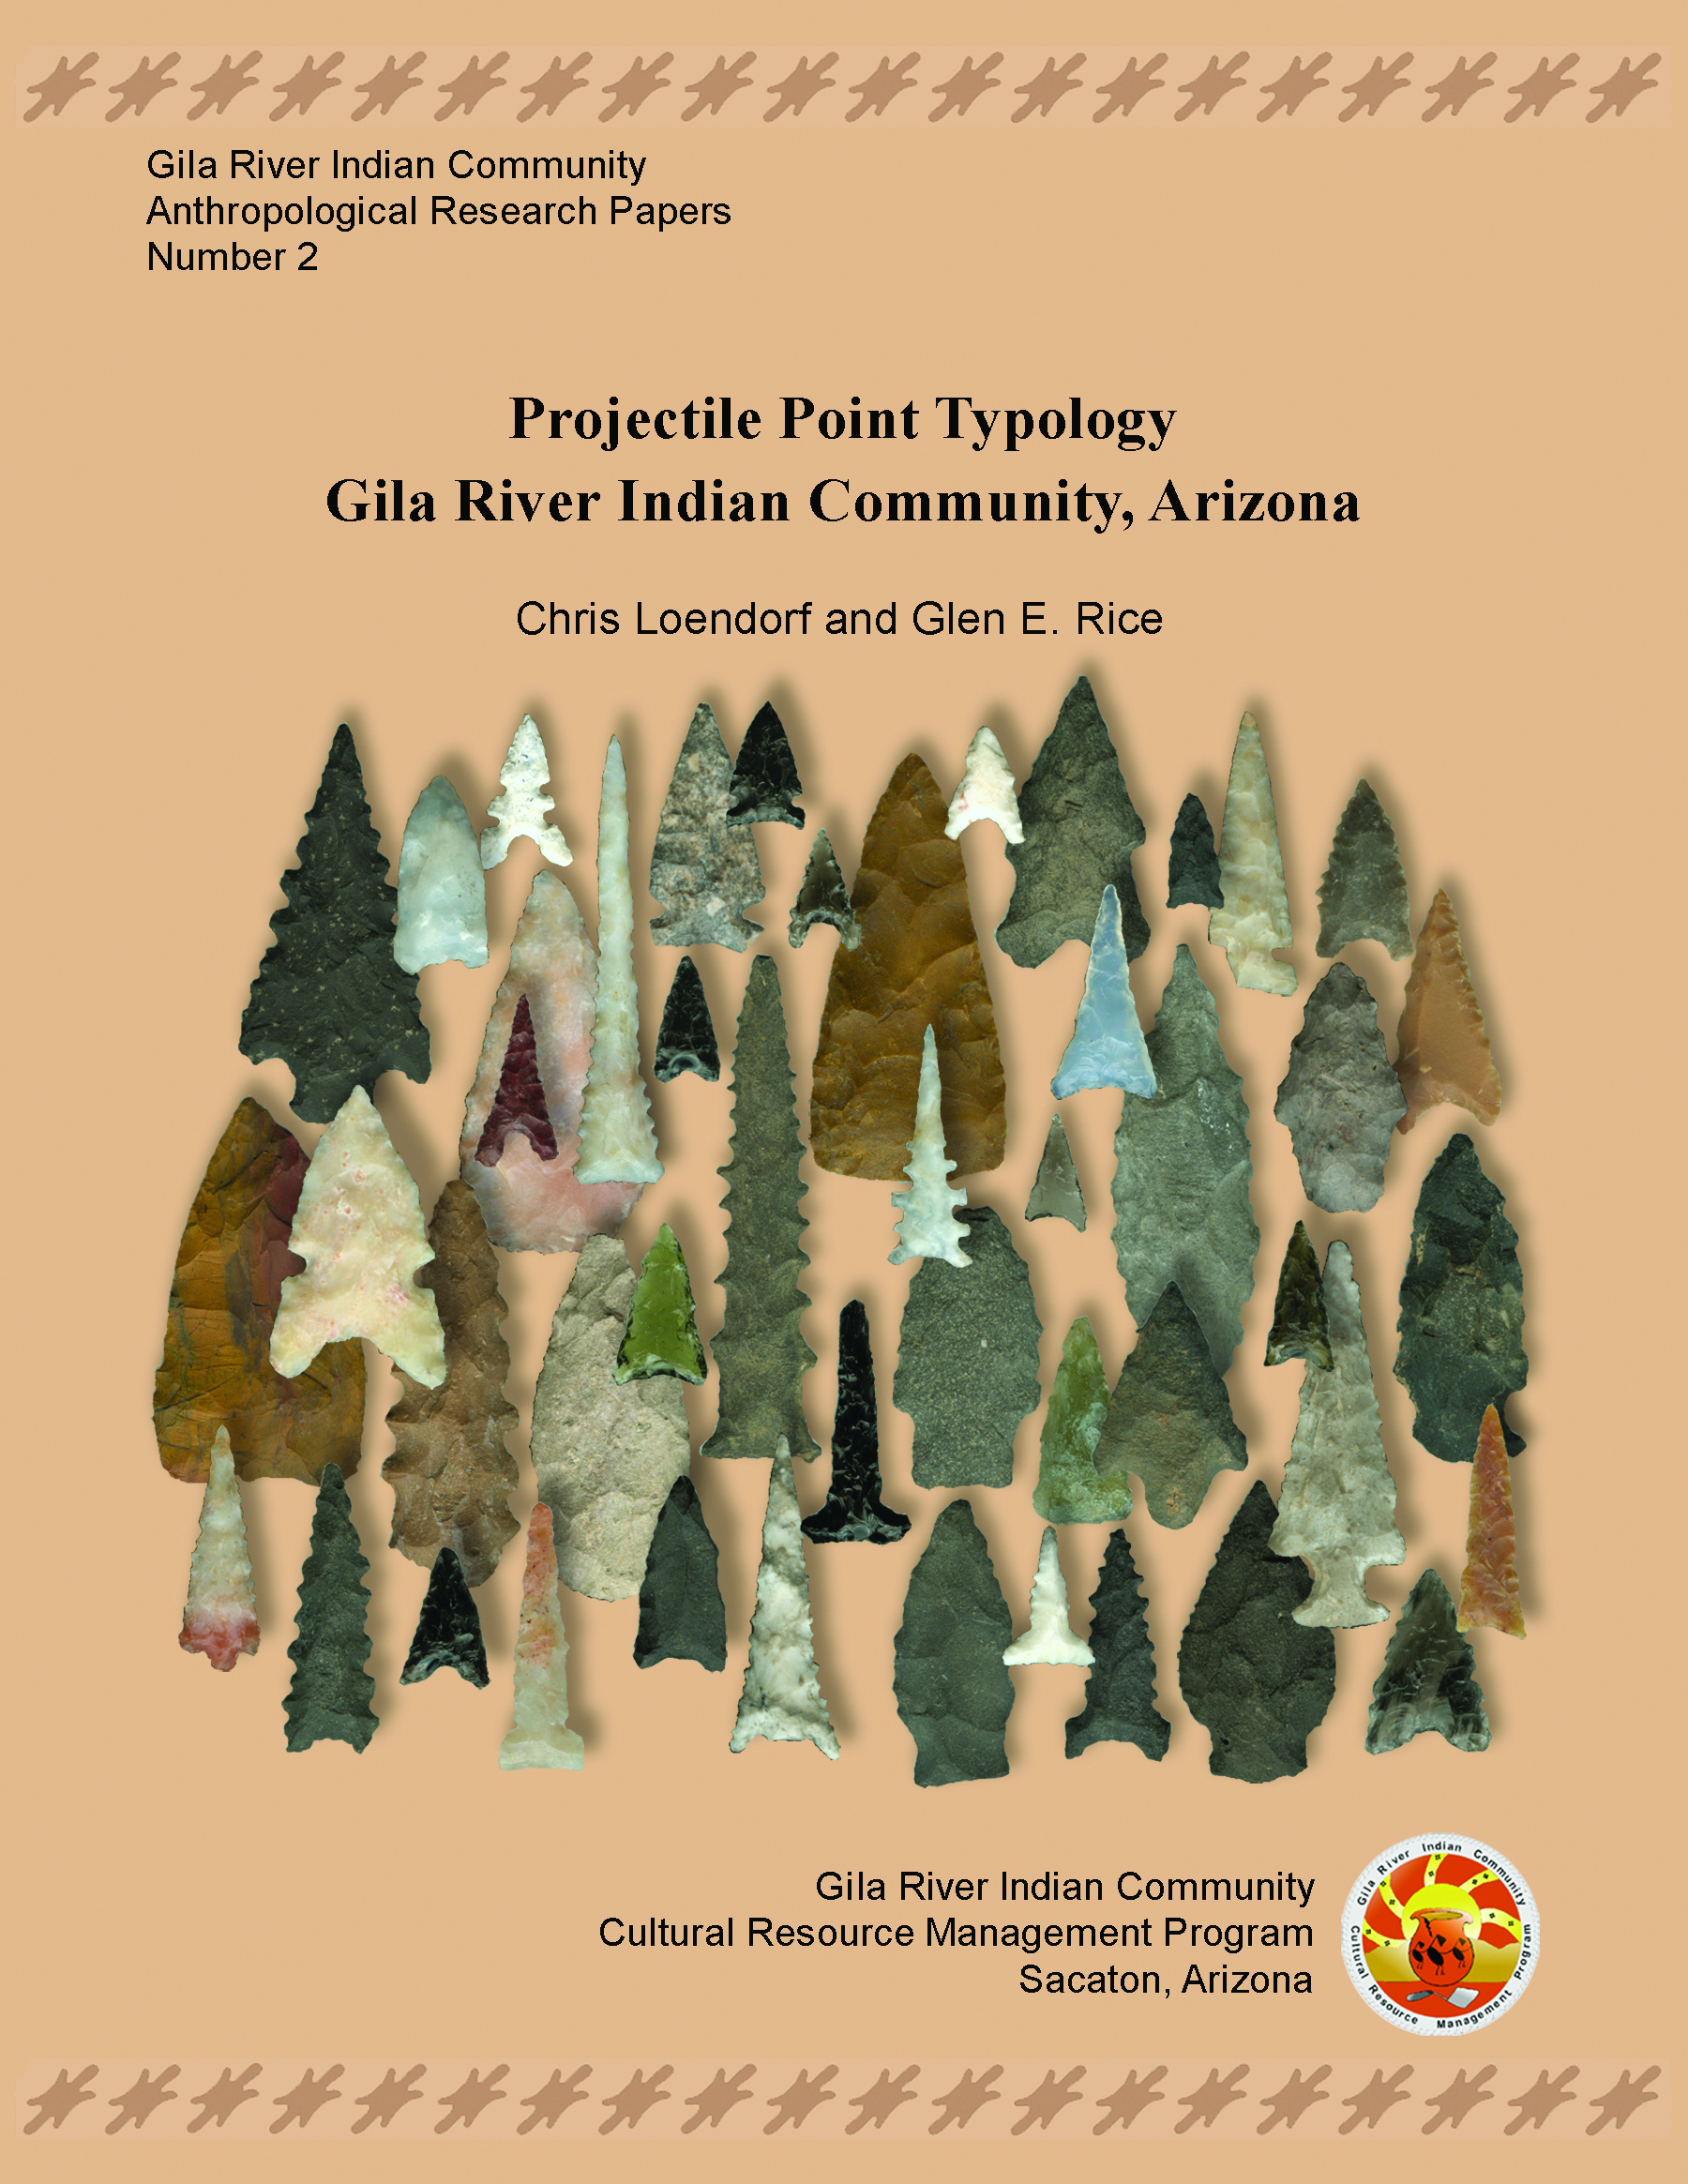 Projectile Point Typology